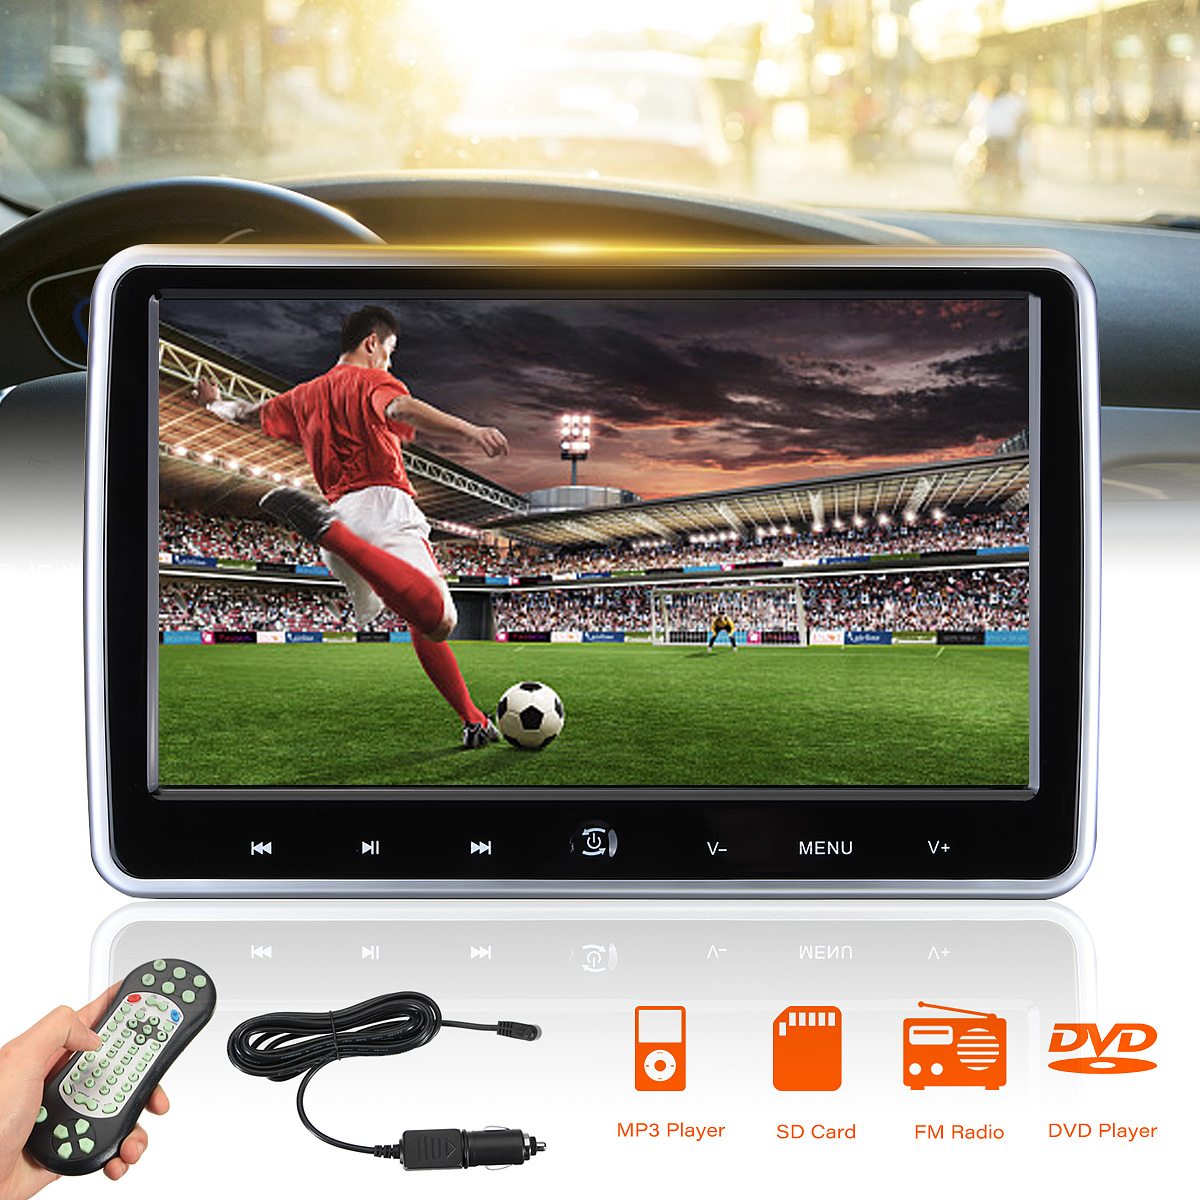 2pcs 1024*600 Car Headrest Monitor 10.1 Inch DVD Player USB/SD/HDMI/FM/Game TFT LCD Screen Touch Button HD Digital LCD Screen 2x 10 1 inch 1024 600 car headrest monitor dvd player usb sd hdmi fm game tft lcd screen touch button support wireless headphone